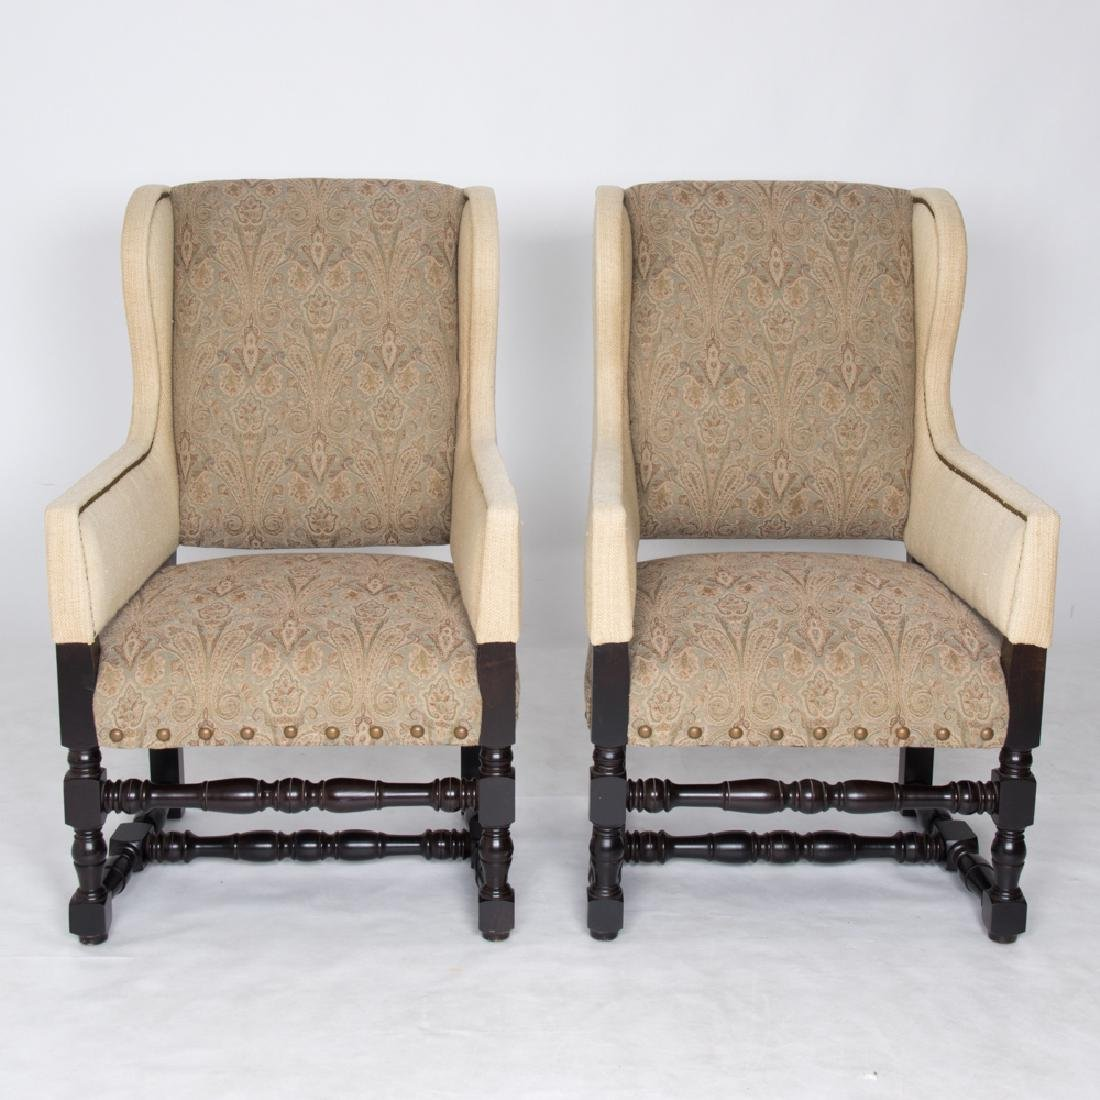 A Pair of Contemporary William and Mary Style